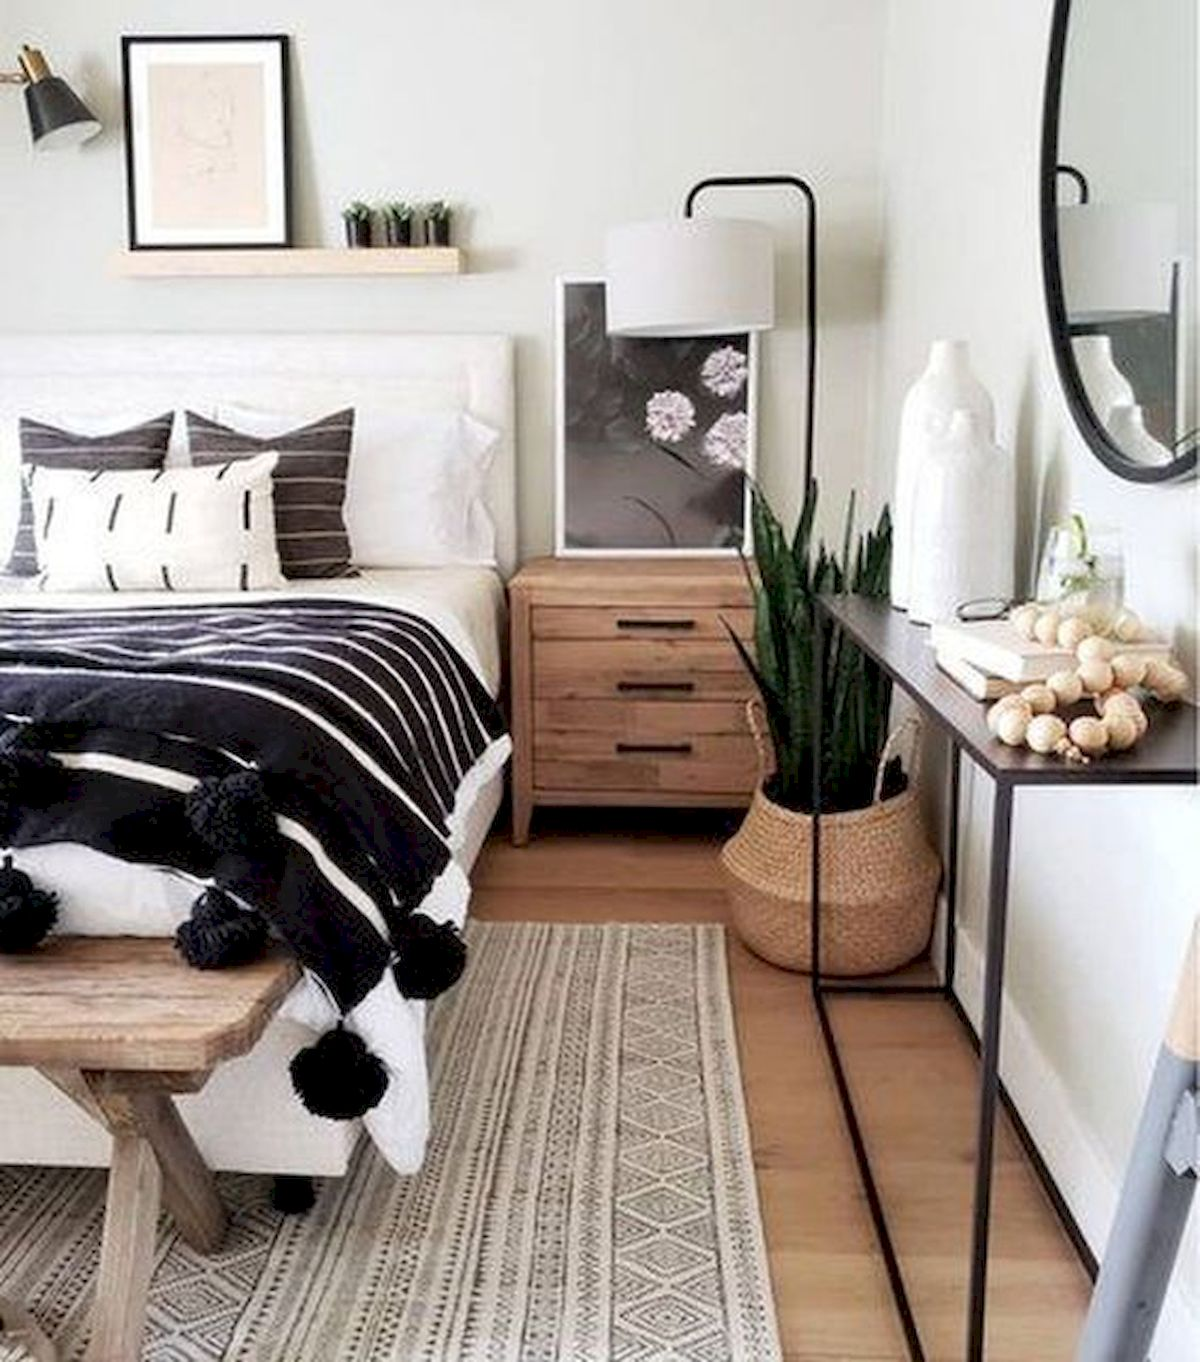 40 Incredible Modern Bedroom Design Ideas That Will Be Relax Place (6)